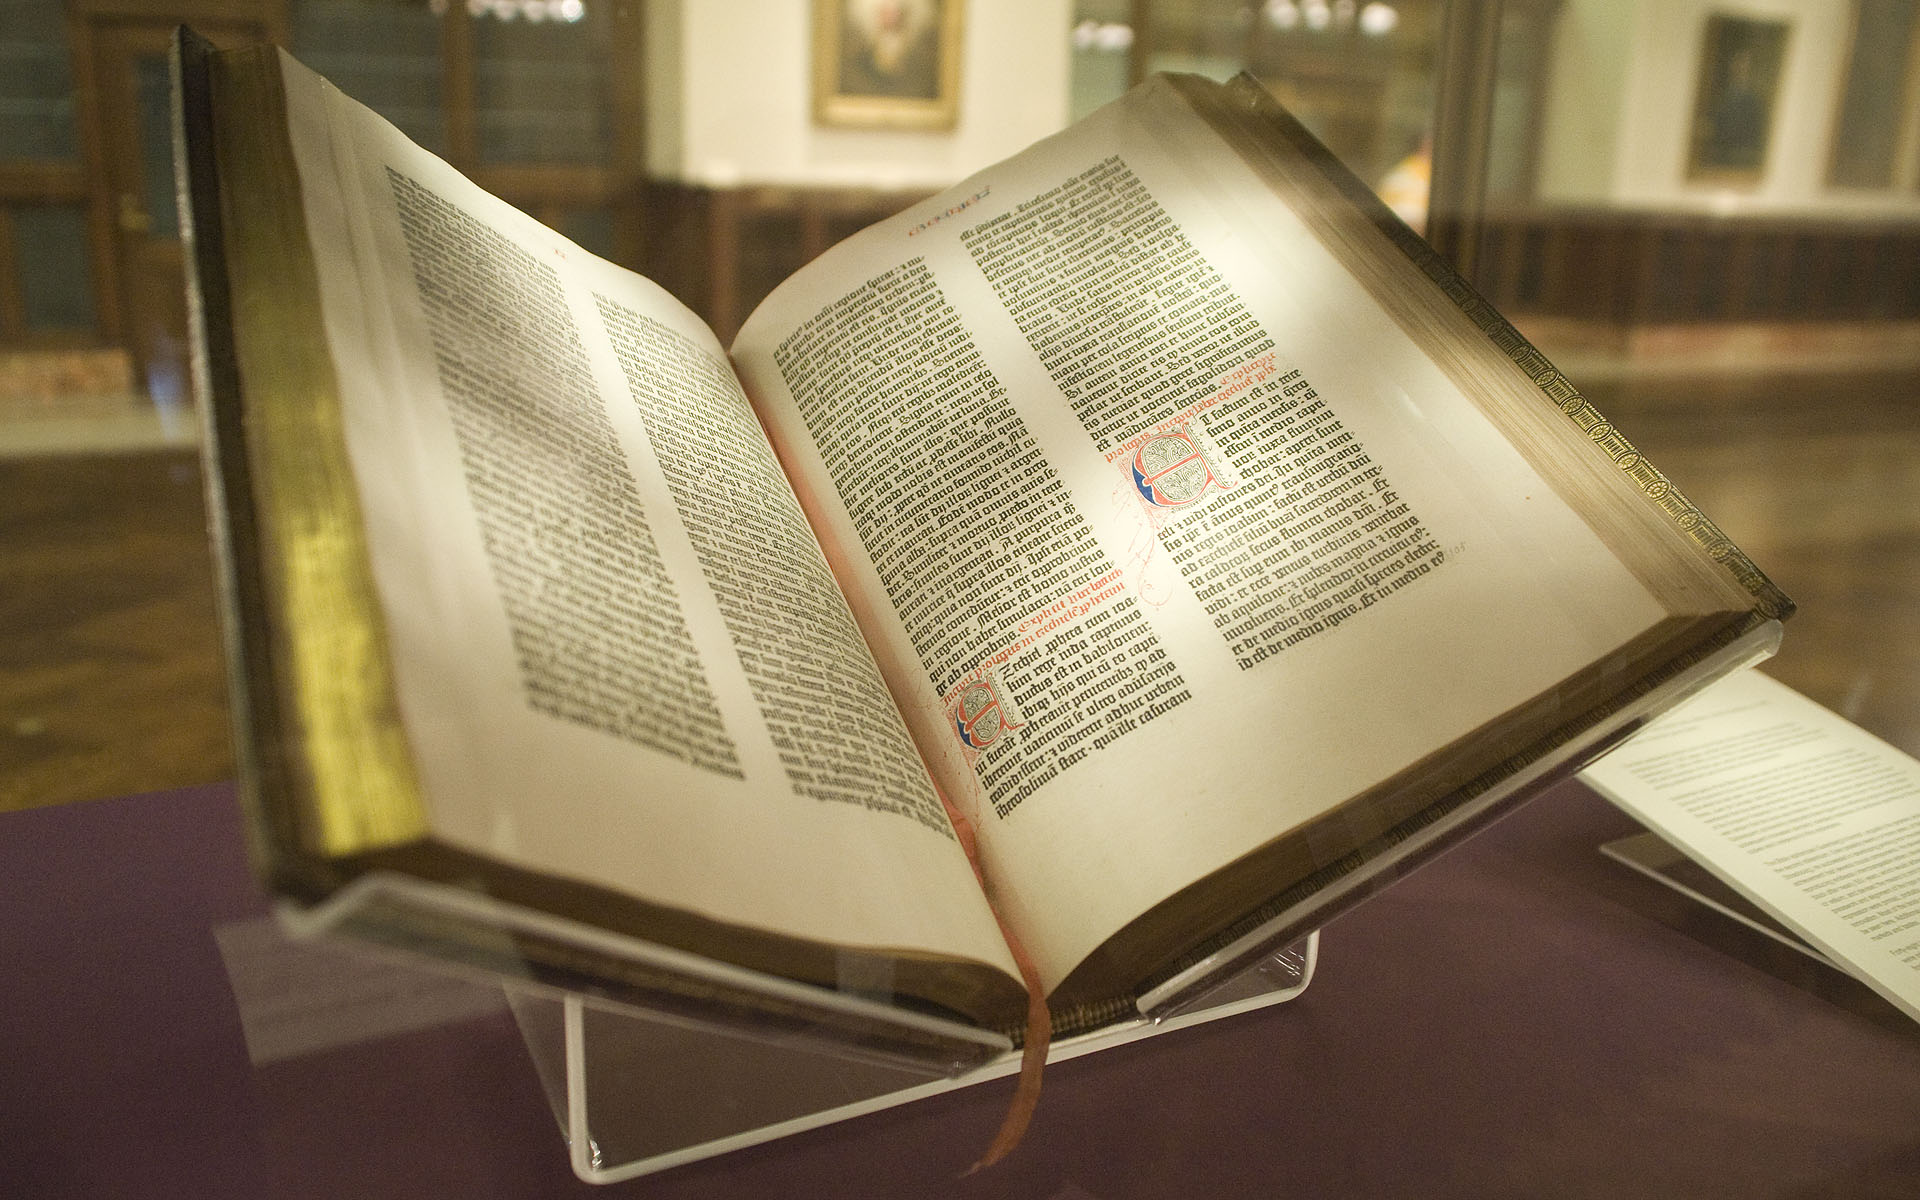 Gutenberg_Bible,_Lenox_Copy,_New_York_Public_Library,_2009._Pic_01.jpg